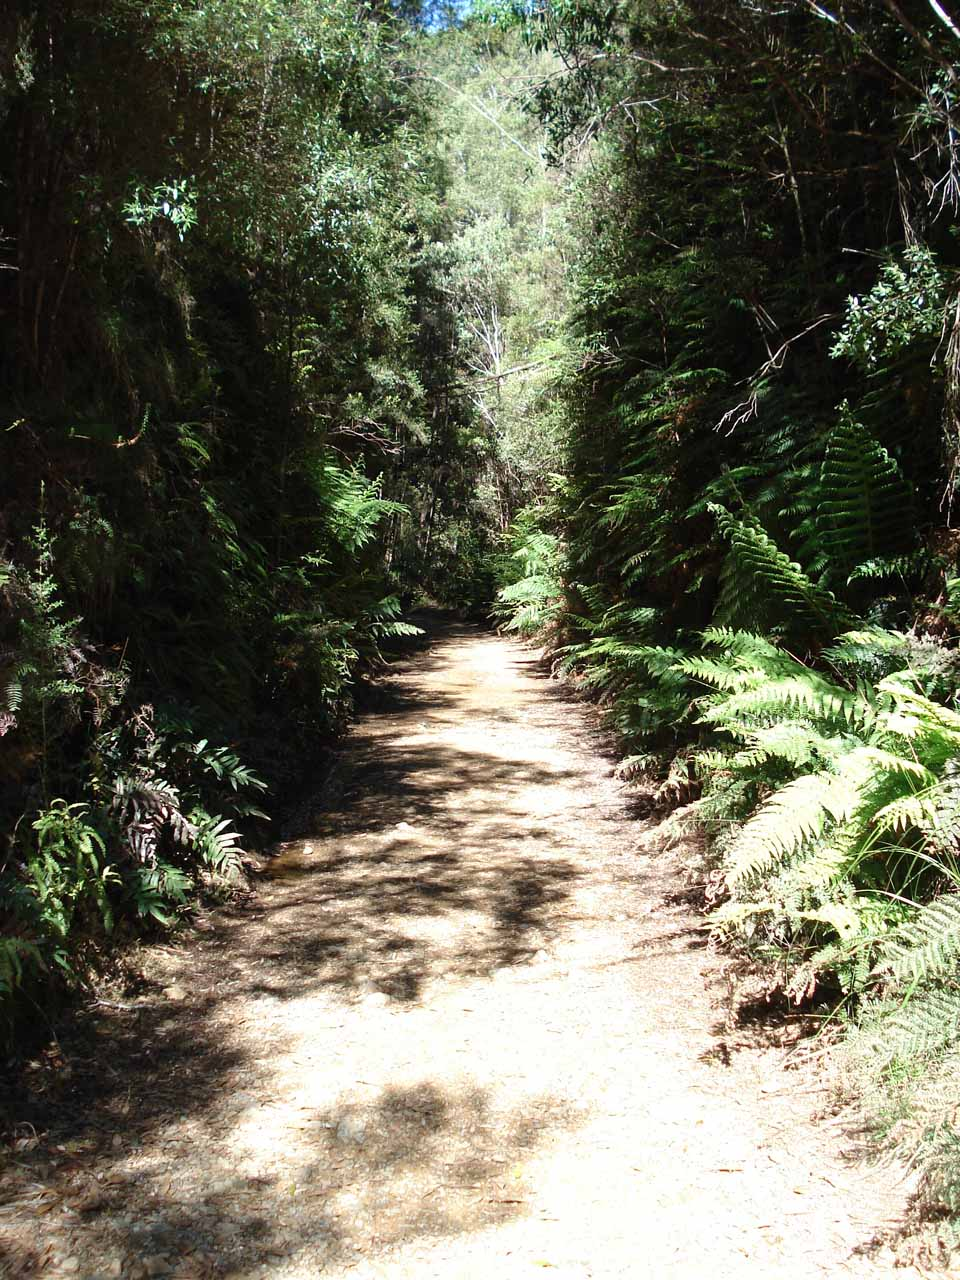 Even though it was warm and sunny during our visit, the Montezuma Falls Track was still flanked by ferns suggesting that this would ordinarily be an area of high rainfall